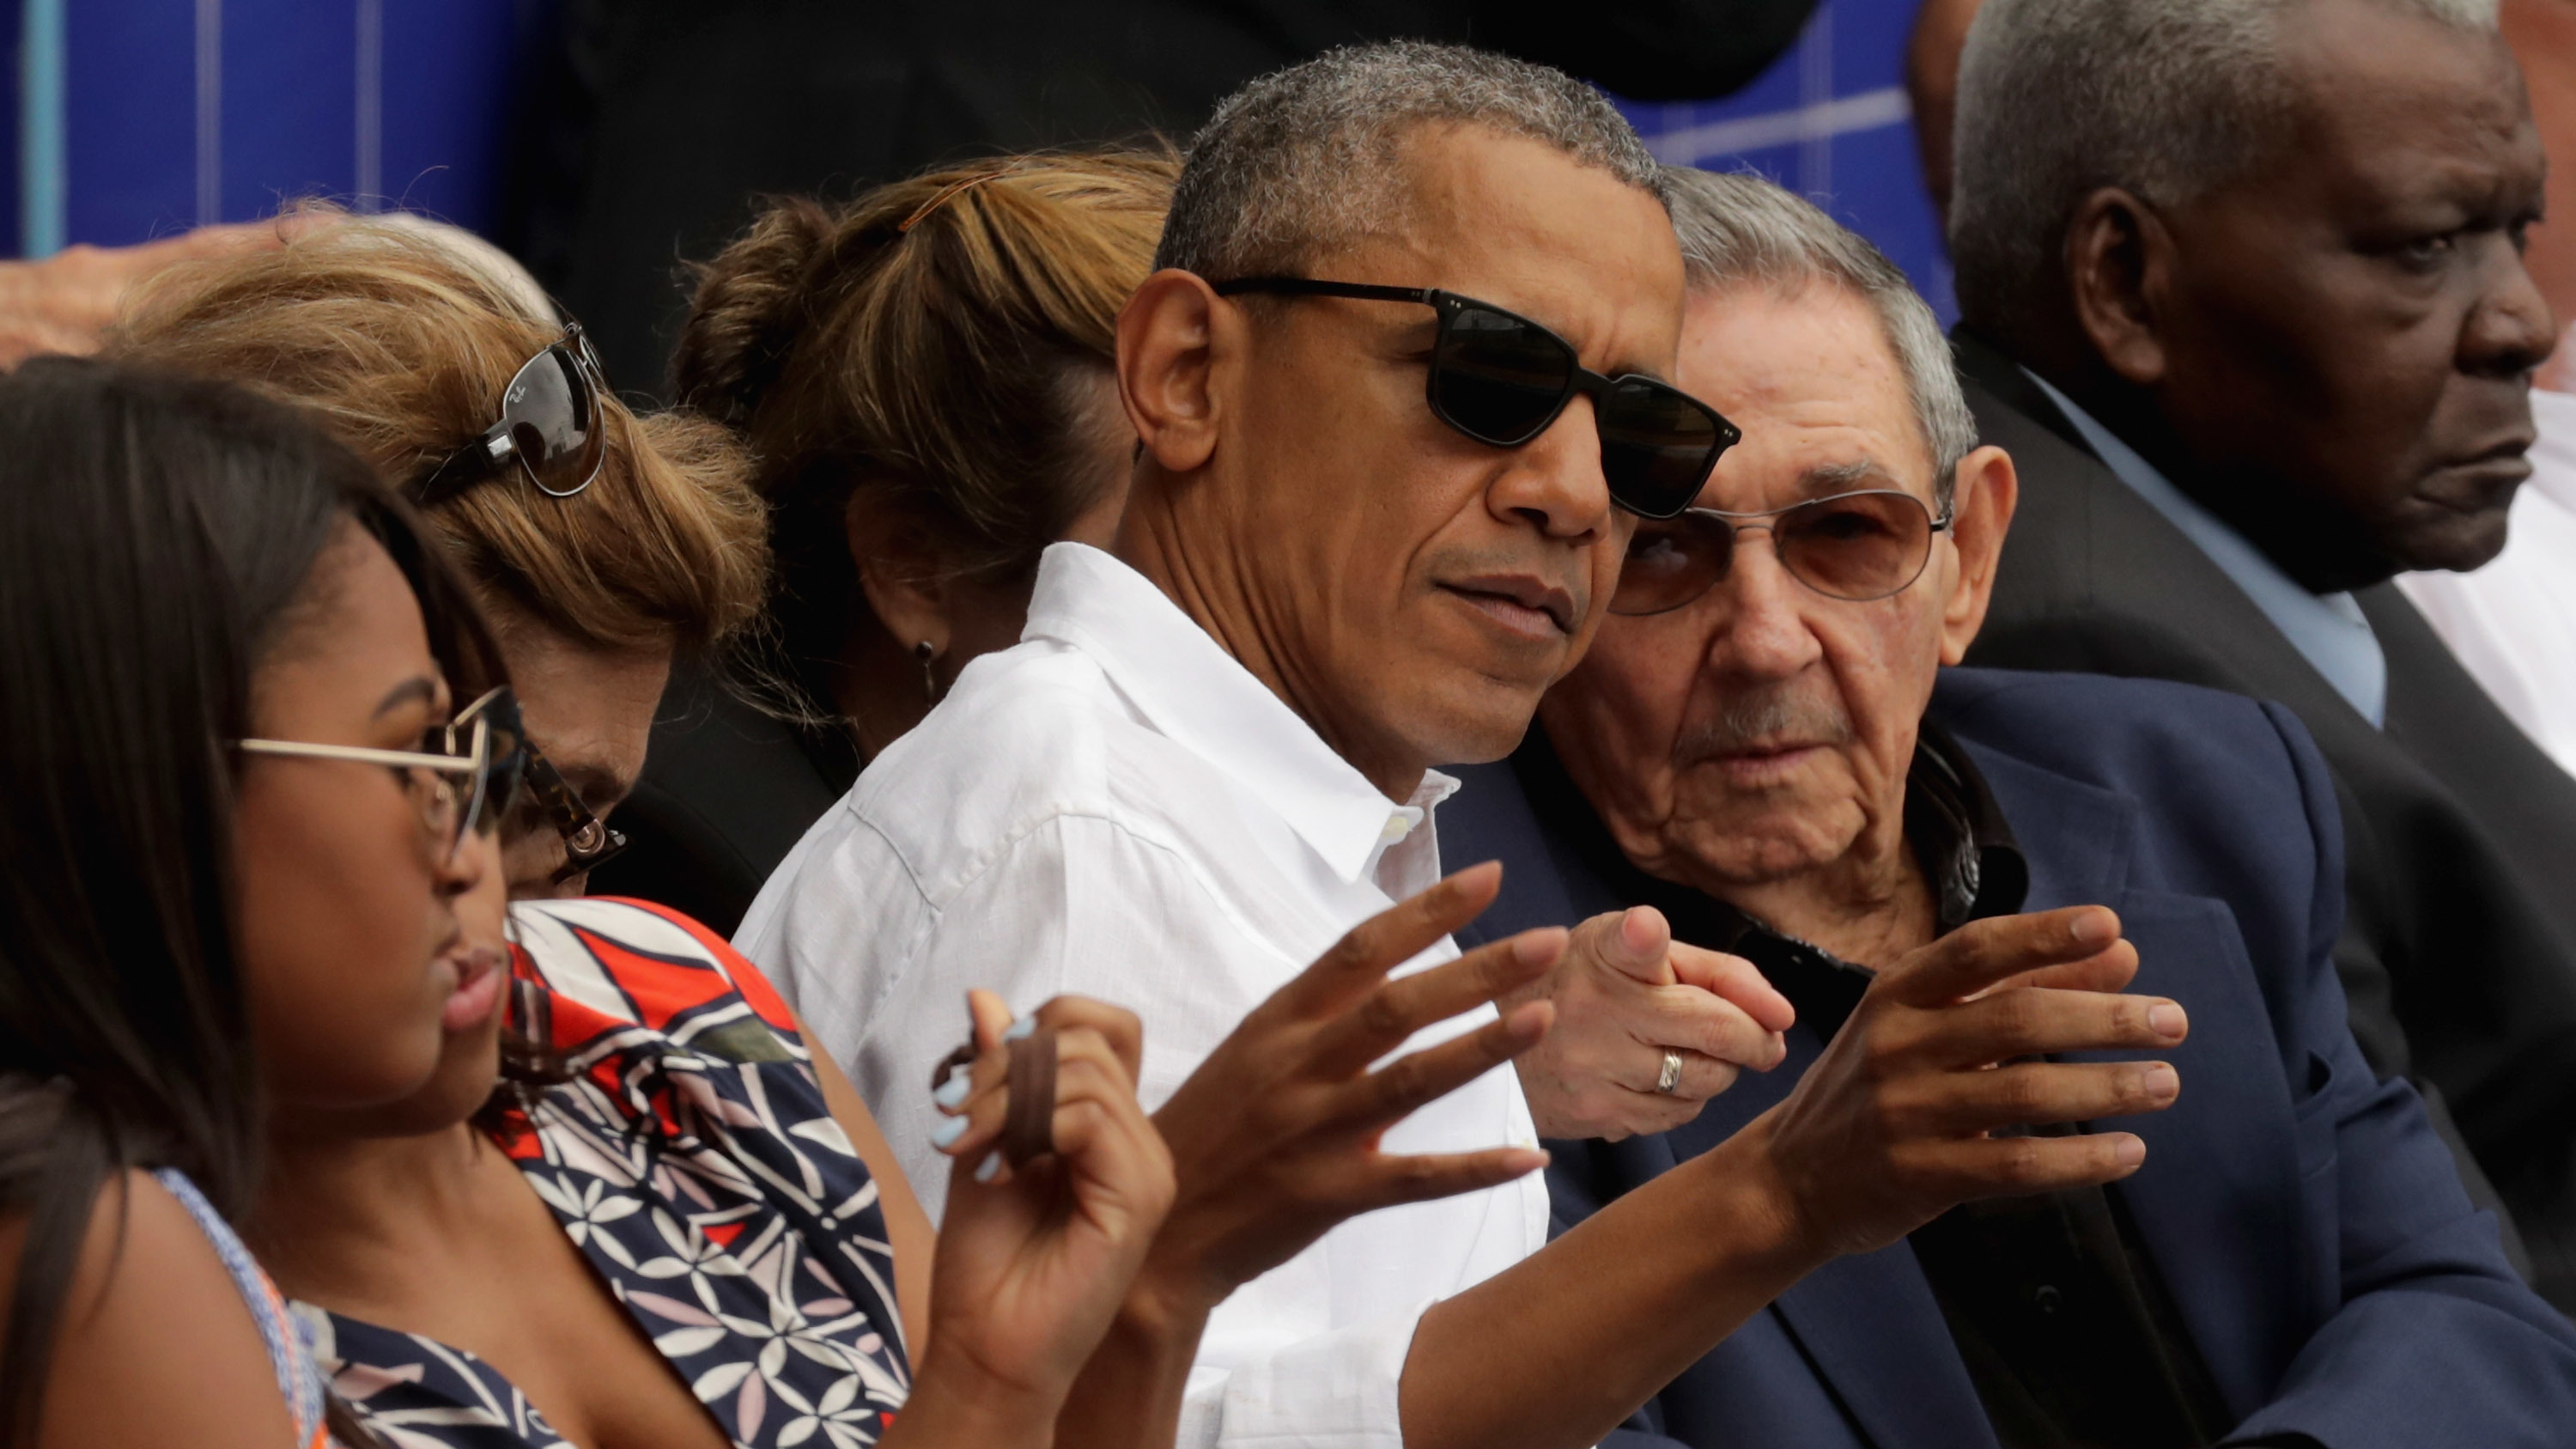 President Barack Obama and Cuban President Raul Castro visit during an exhibition game between the Cuban national team and the Major League Baseball team Tampa Bay Devil Rays at the Estado Latinoamericano March 22, 2016 in Havana, Cuba. (Chip Somodevilla/Getty Images)